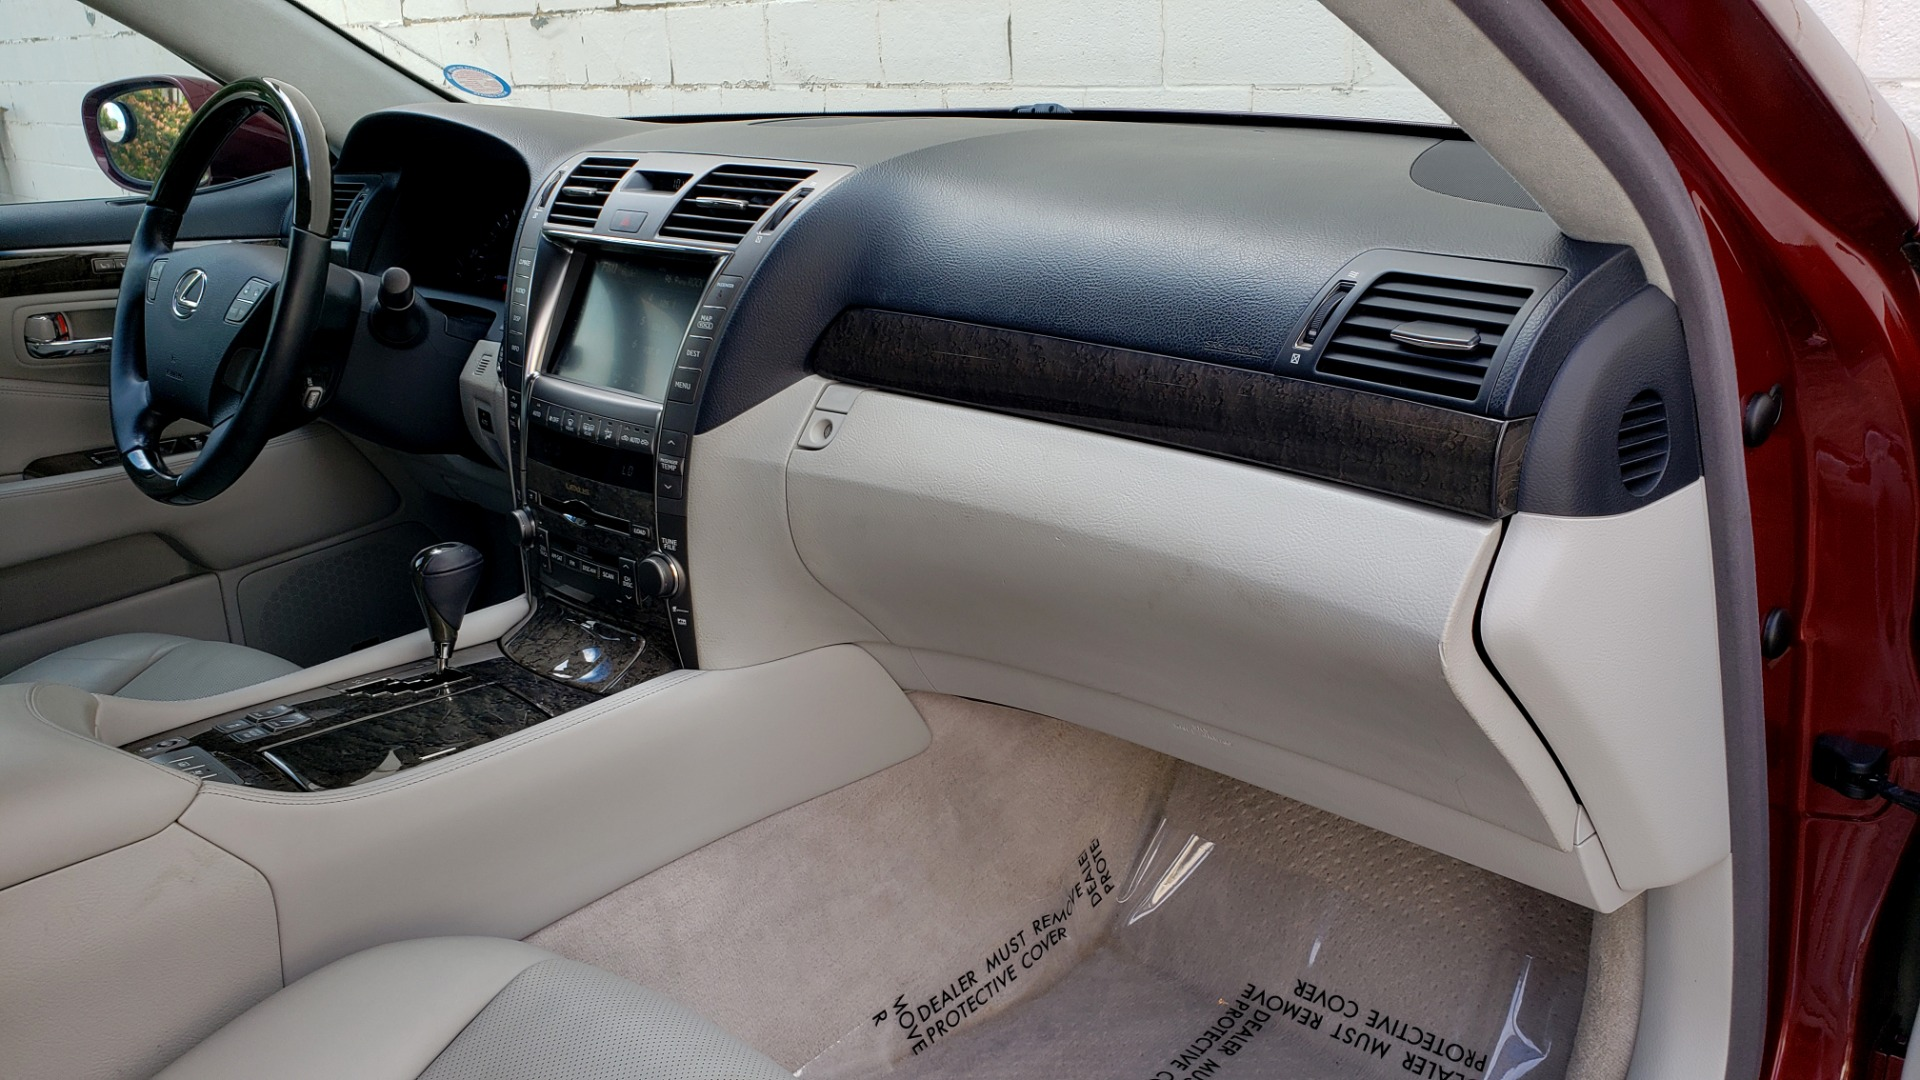 Used 2007 Lexus LS 460 LWB / LUX / NAV / SUNROOF / MARK LEVINSON SND / AIR SUSP for sale Sold at Formula Imports in Charlotte NC 28227 68